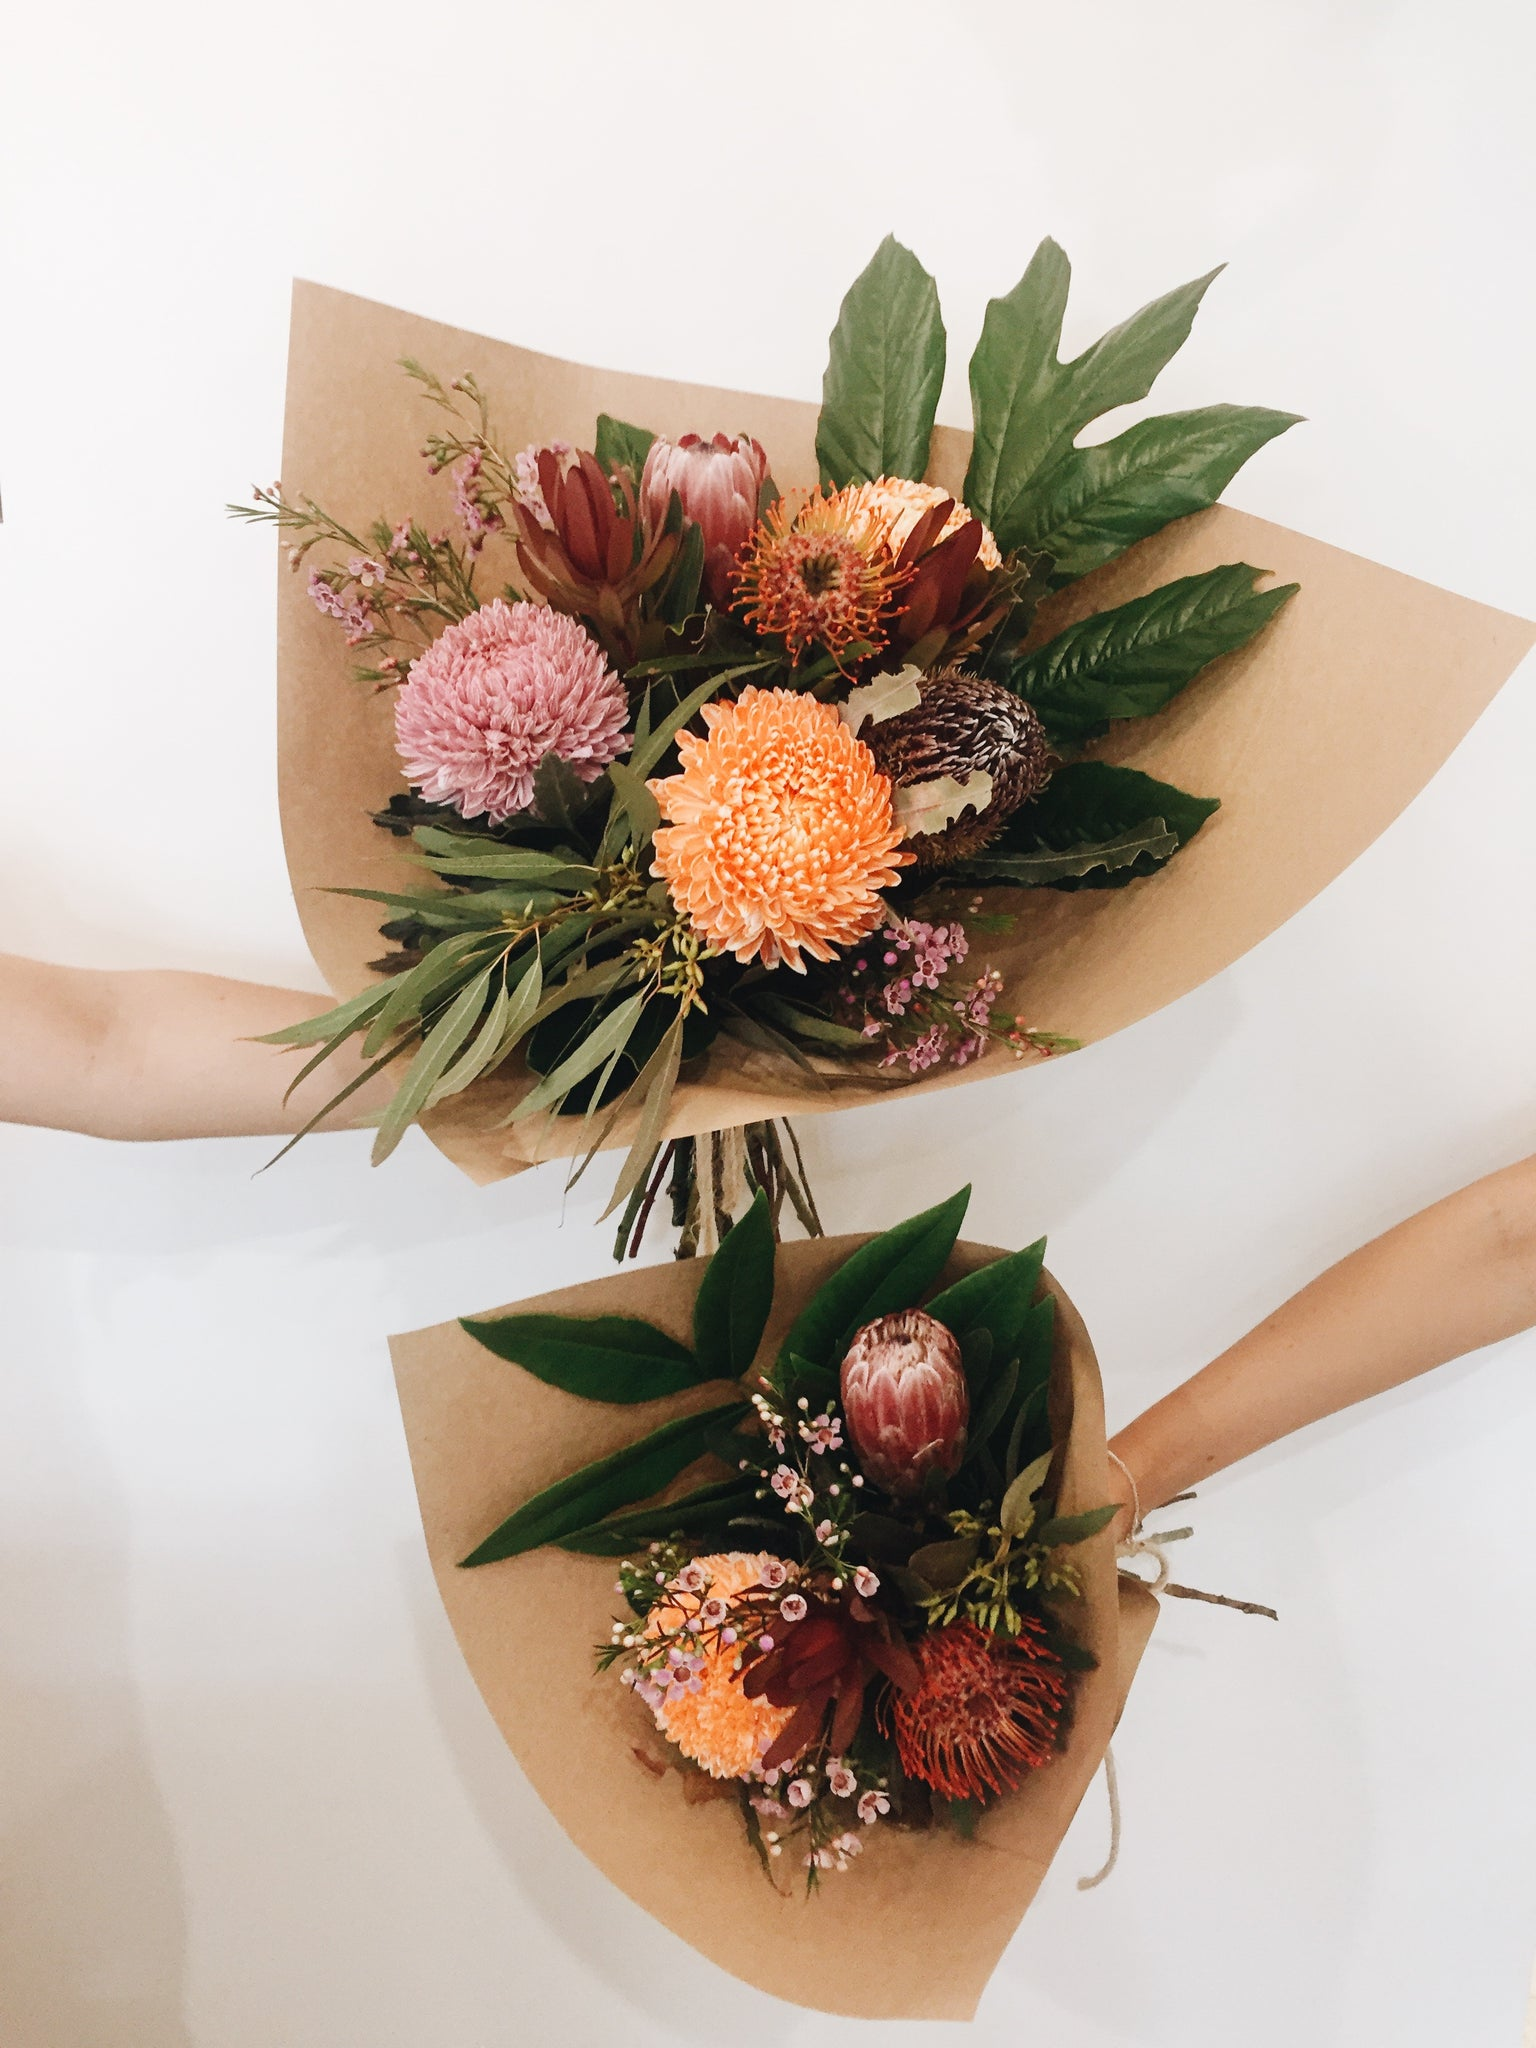 Buderim Florist Buderim flower delivery bouquet Maroochydore Coolum Beach florist Noosa Yaroomba Ninderry Sunshine Coast flowers bouquet Marcoola Peregian beach Peregian Springs sunshine beach Marcus Beach Tewantin Noosaville Noosa Heads roses natives Lilys proteas Kawana Caloundra Birtinya Sippy Downs Mountain Creek cotton tree pacific paradise twin waters Mount Coolum hamper pamper pack Roses native banksia protea flowers florist chocolate